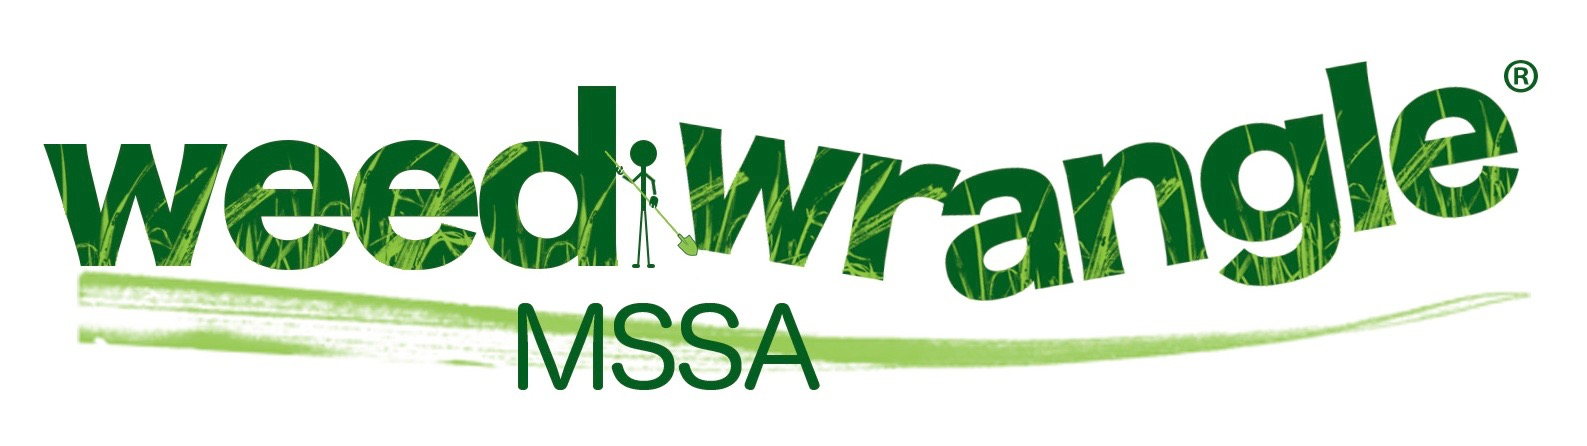 weedwrangle_mssa